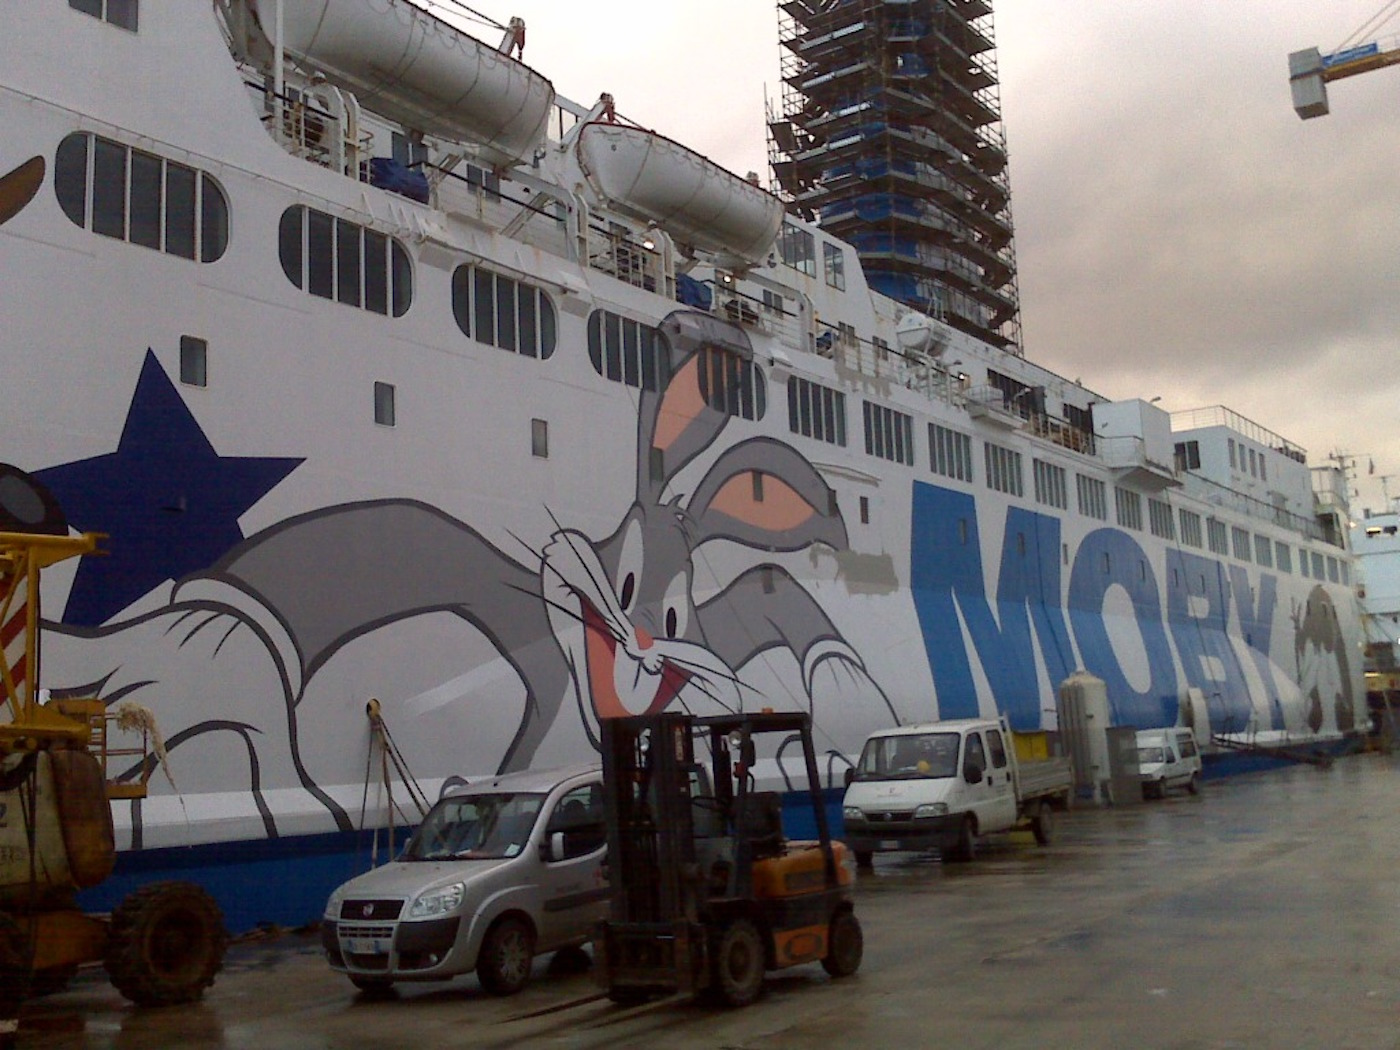 MOBY CORSE 11.jpg